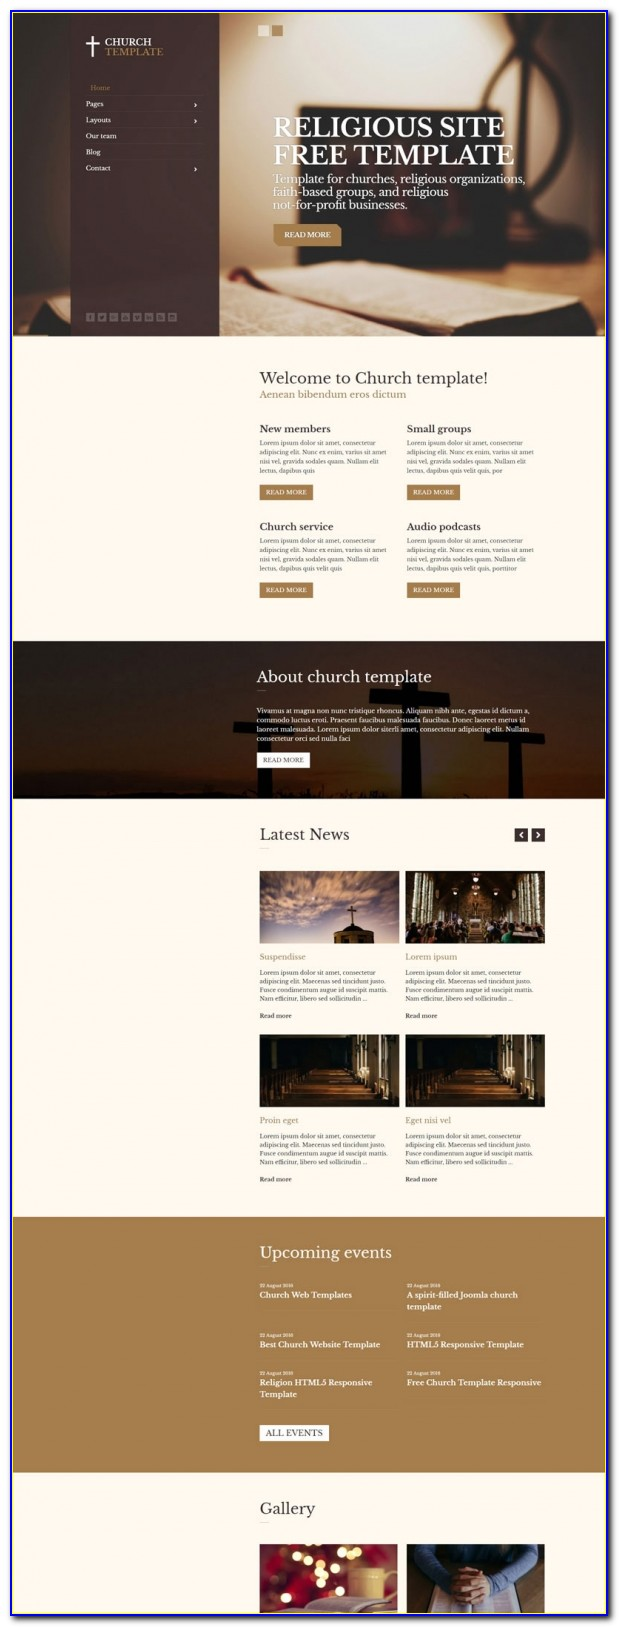 Best Free Joomla Website Templates Vincegray2014